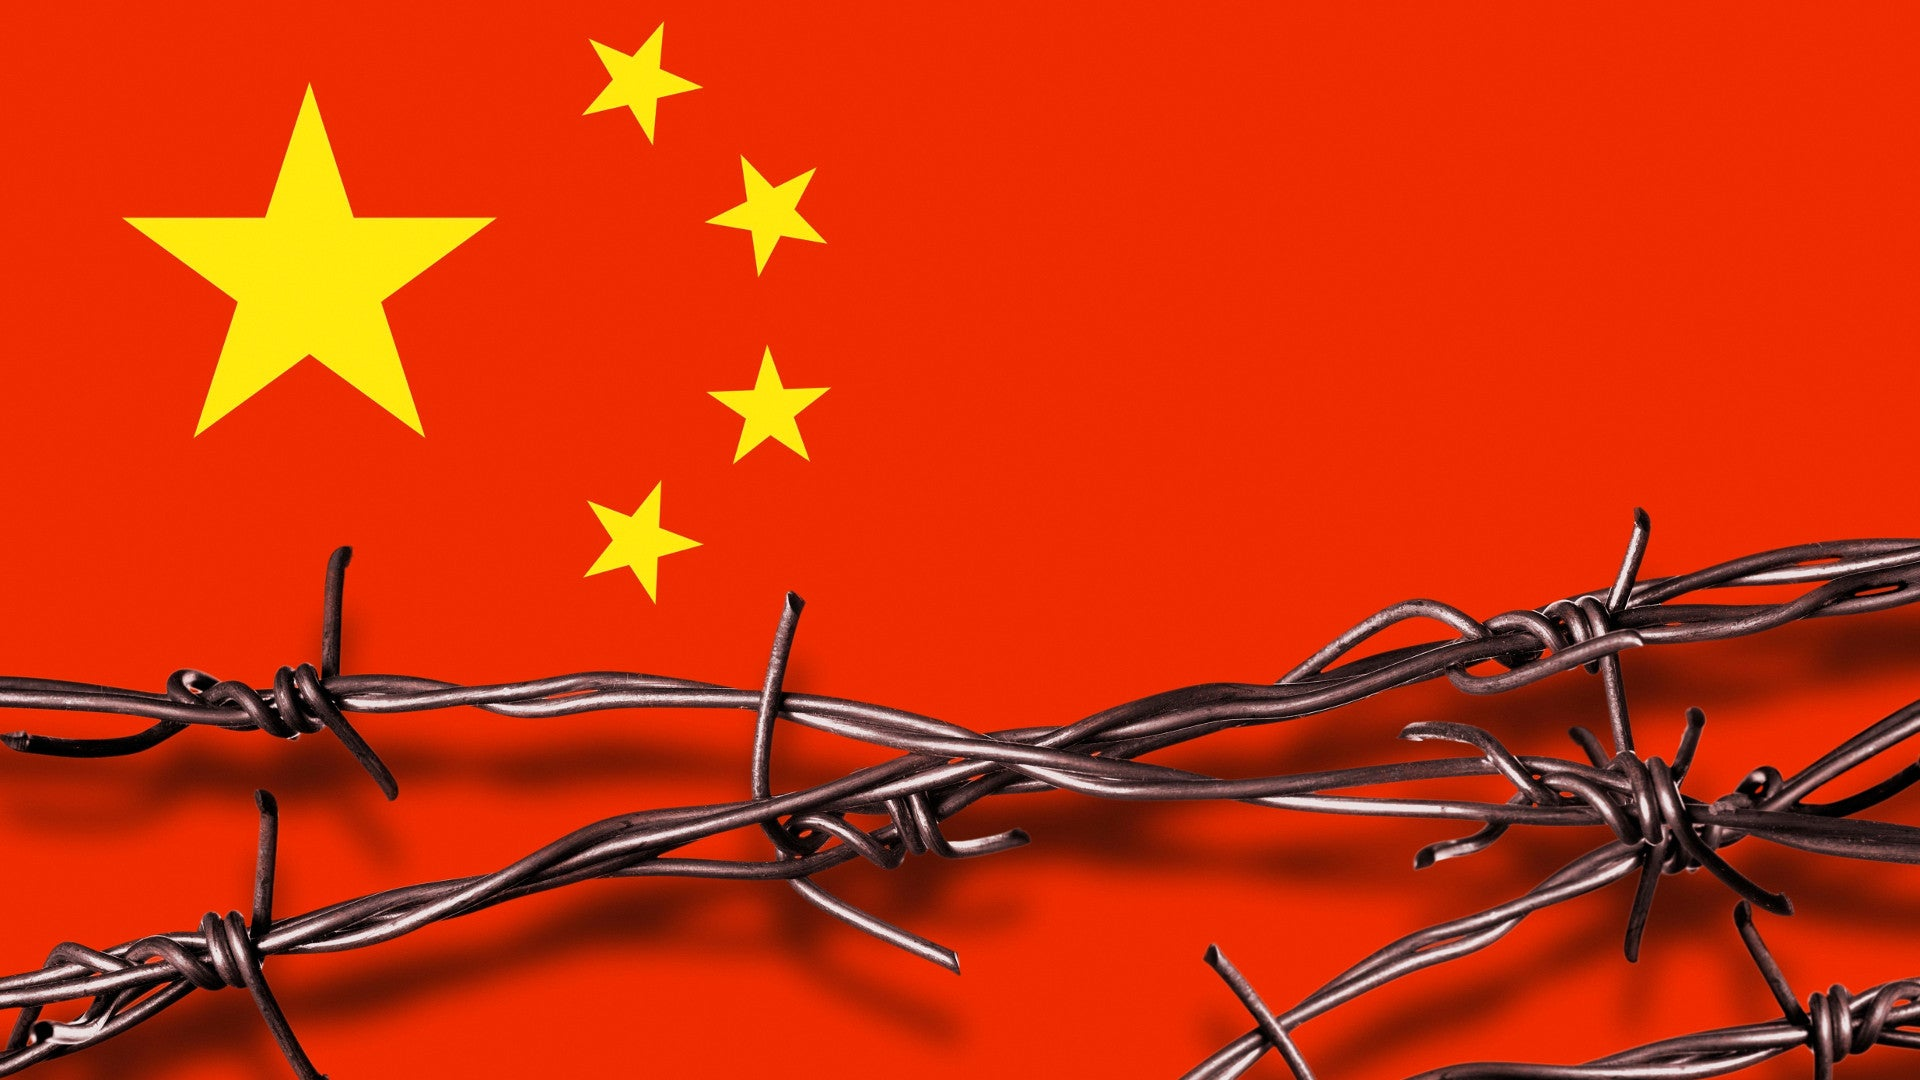 China's Dismantling Of CIA Spy Ring Highlights Growing Dystopian-Like Surveillance State